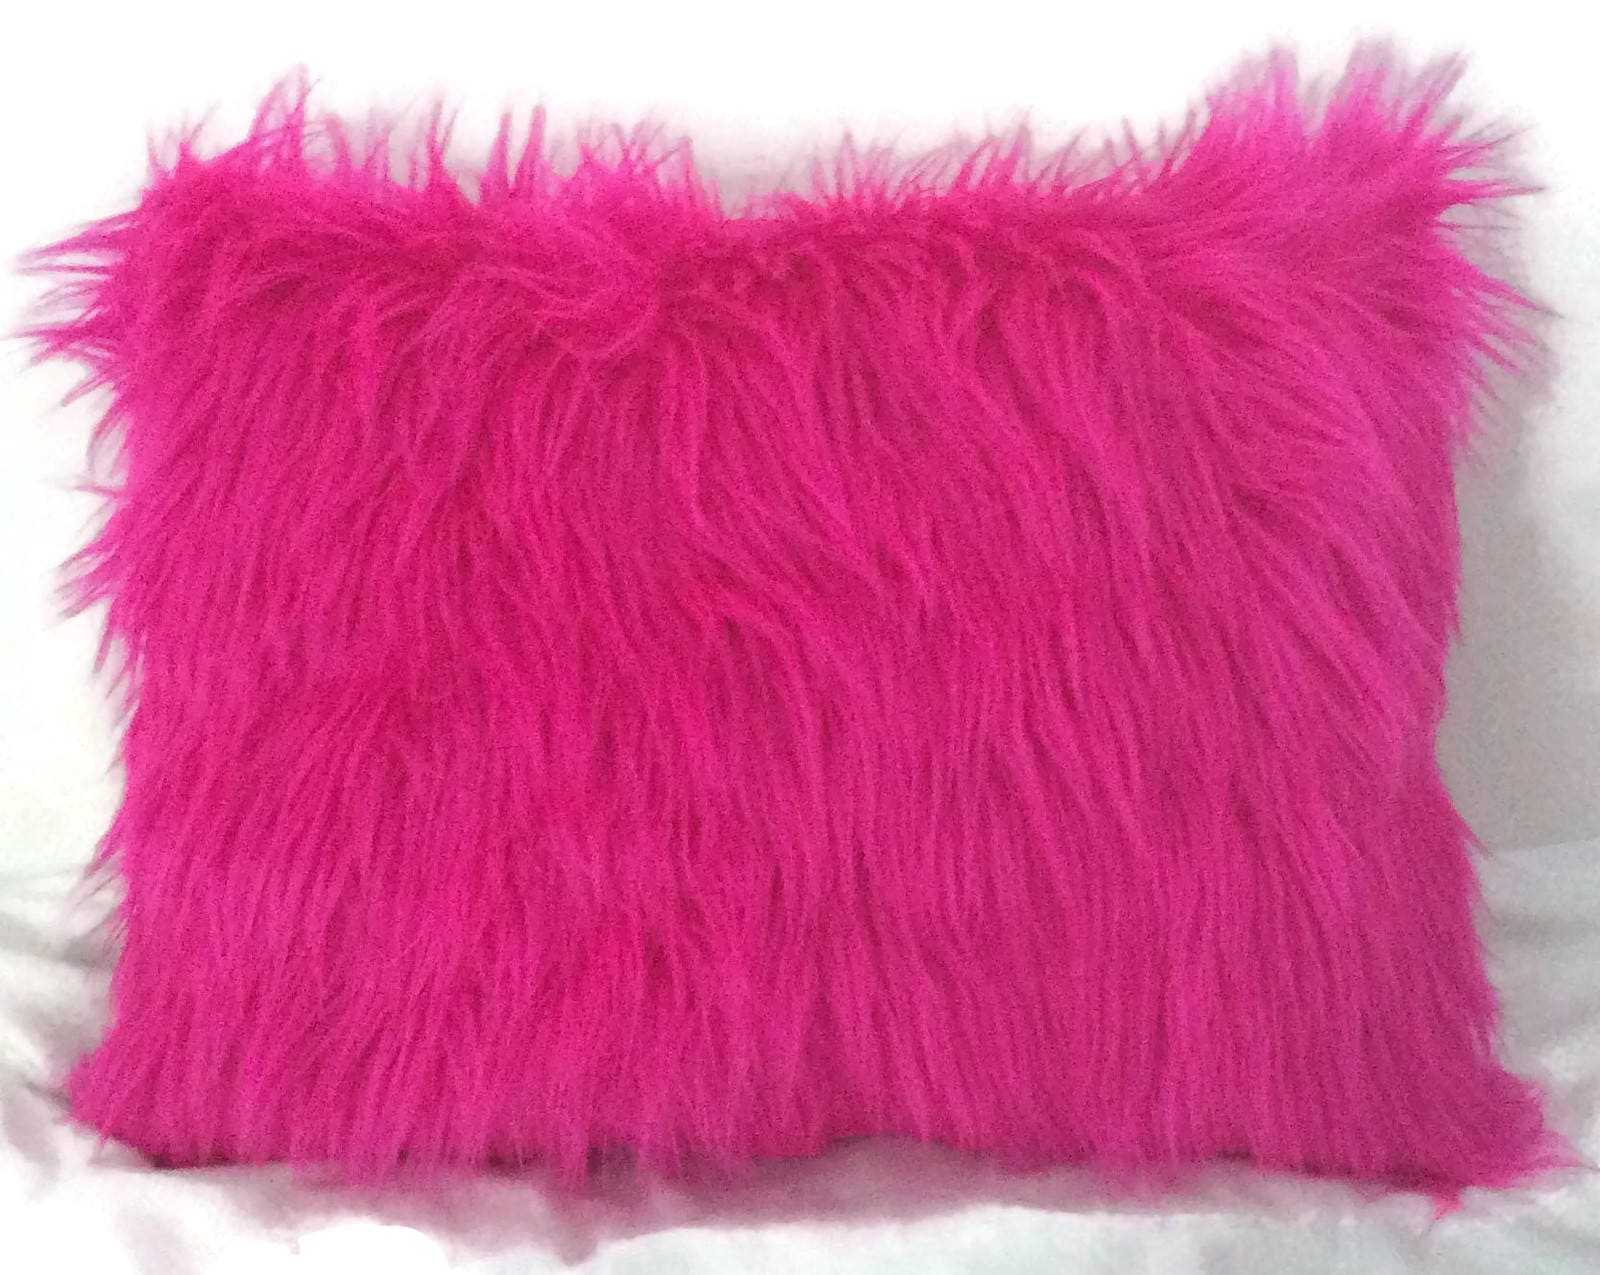 Faux fur Pink pillow Pink faux fur pillow Pink Throw pillow